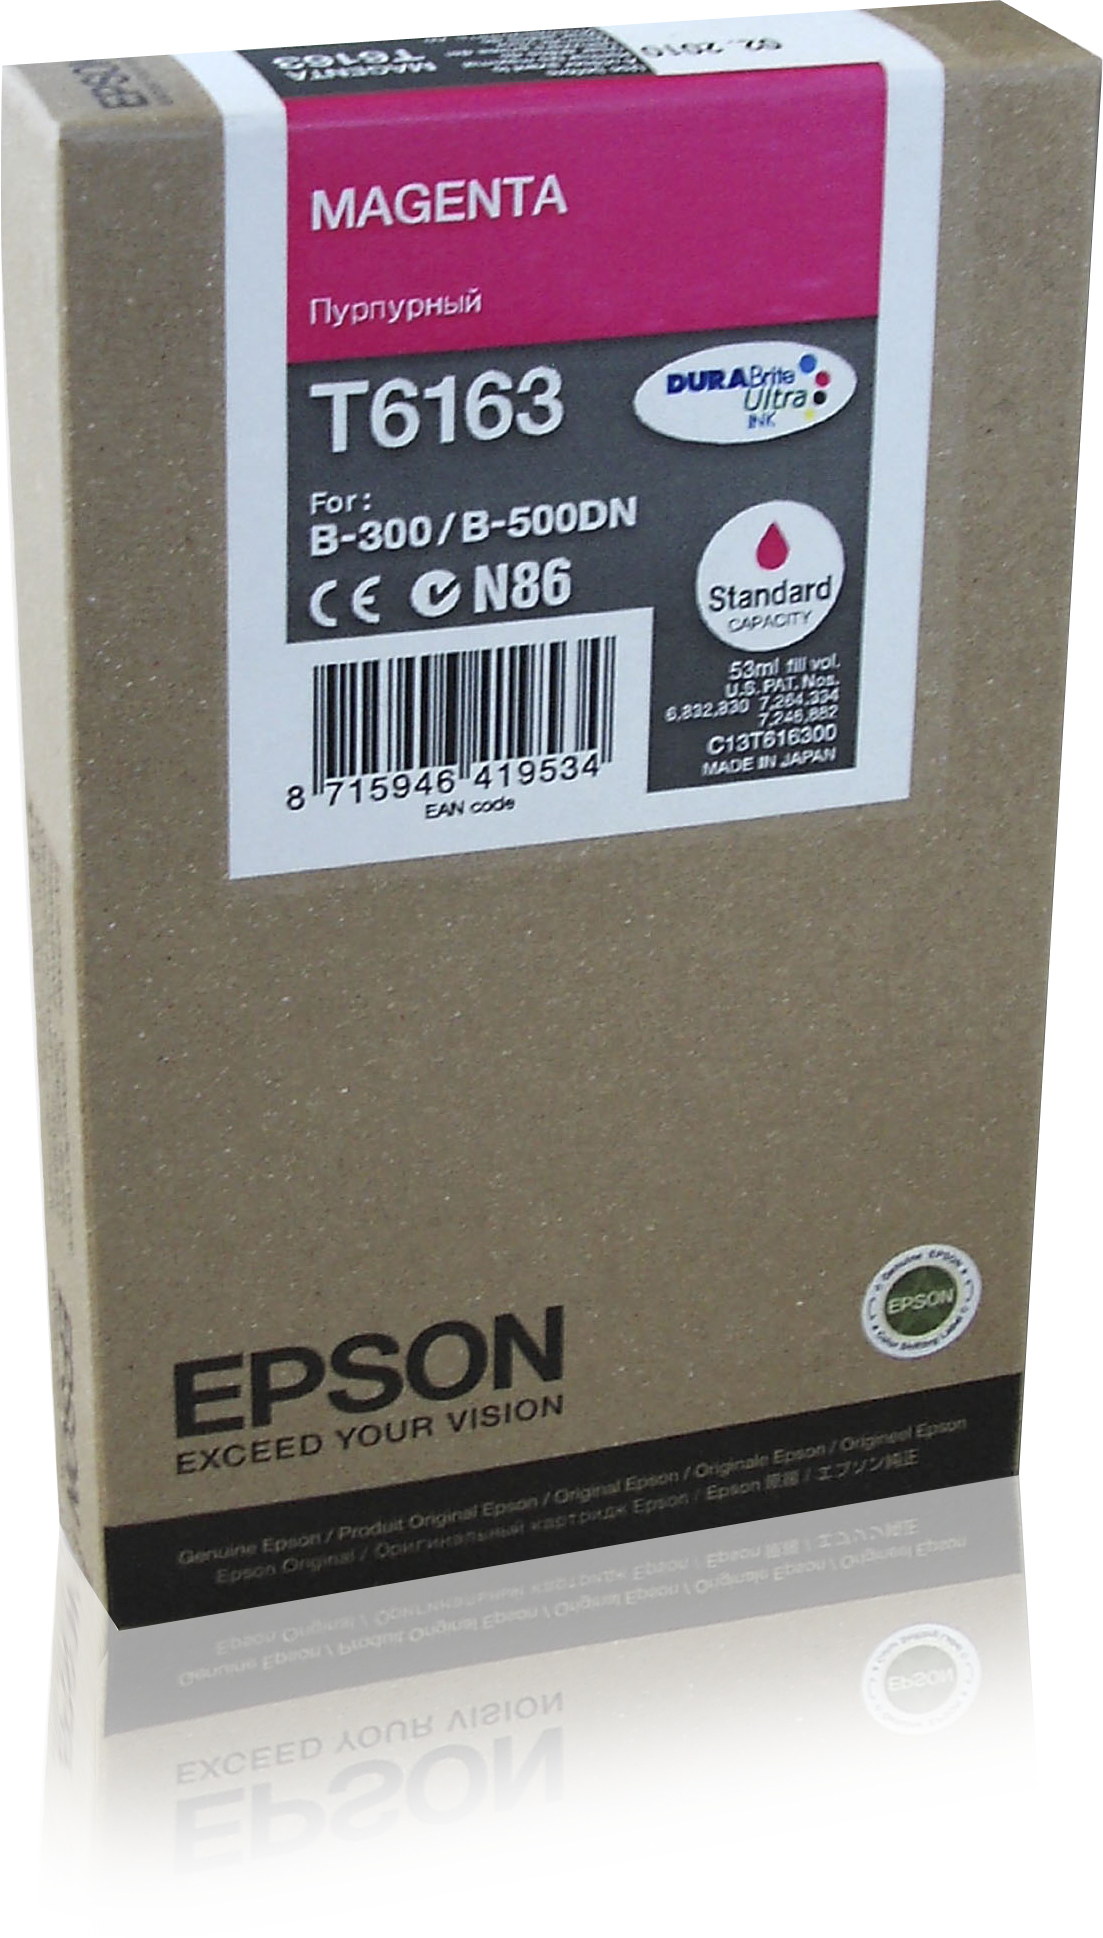 Epson SC Magenta 3.5k ink cartridge 53 ml